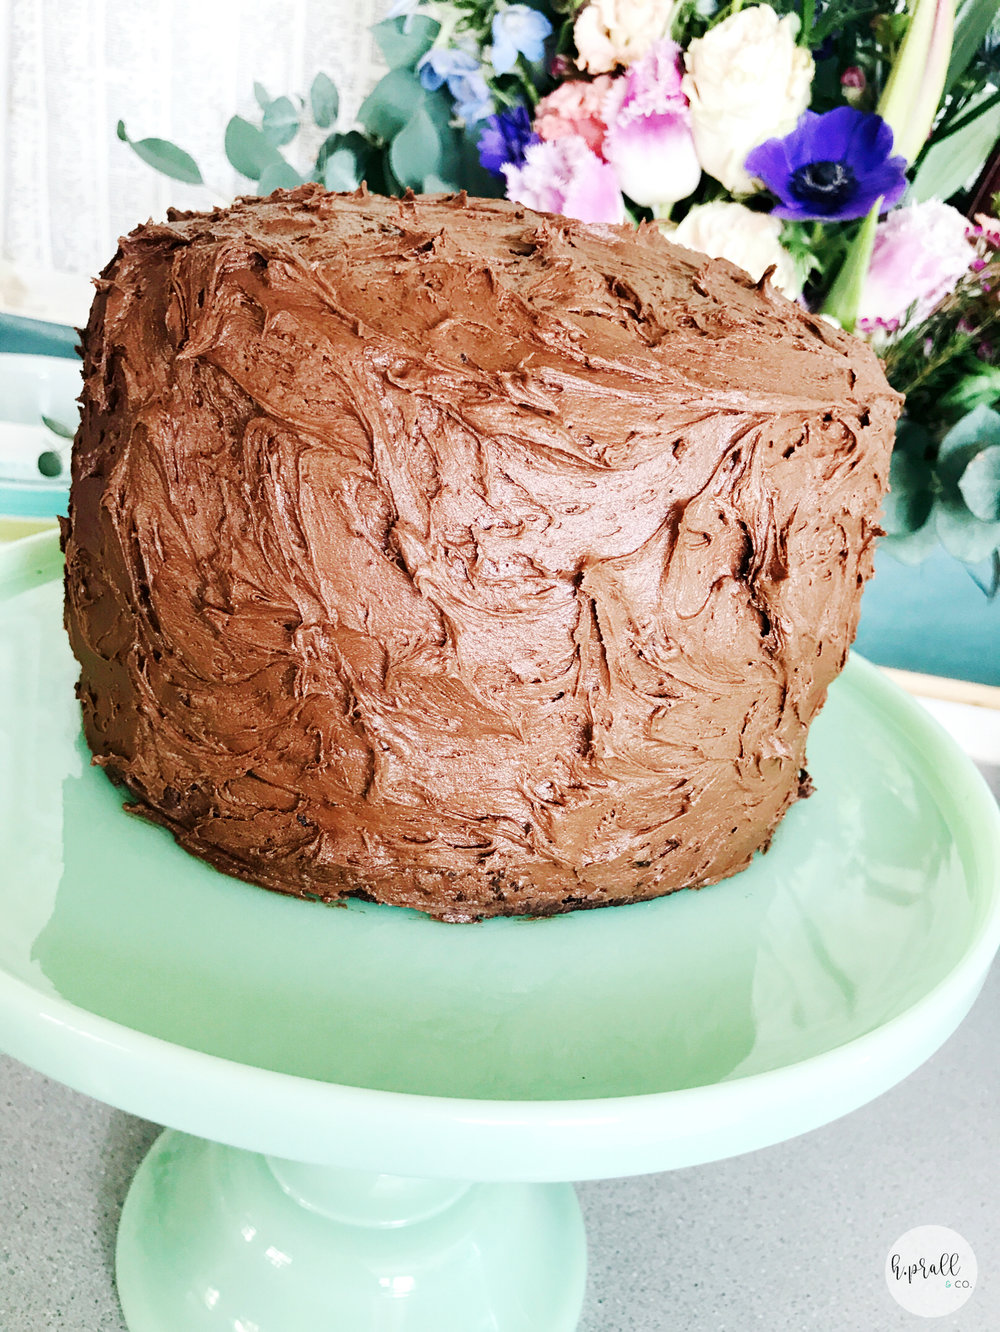 Triple Layer Chocolate Cake on a mint green cake stand | Interior Decorating Blog | Des Moines, IA | hprallandco.com